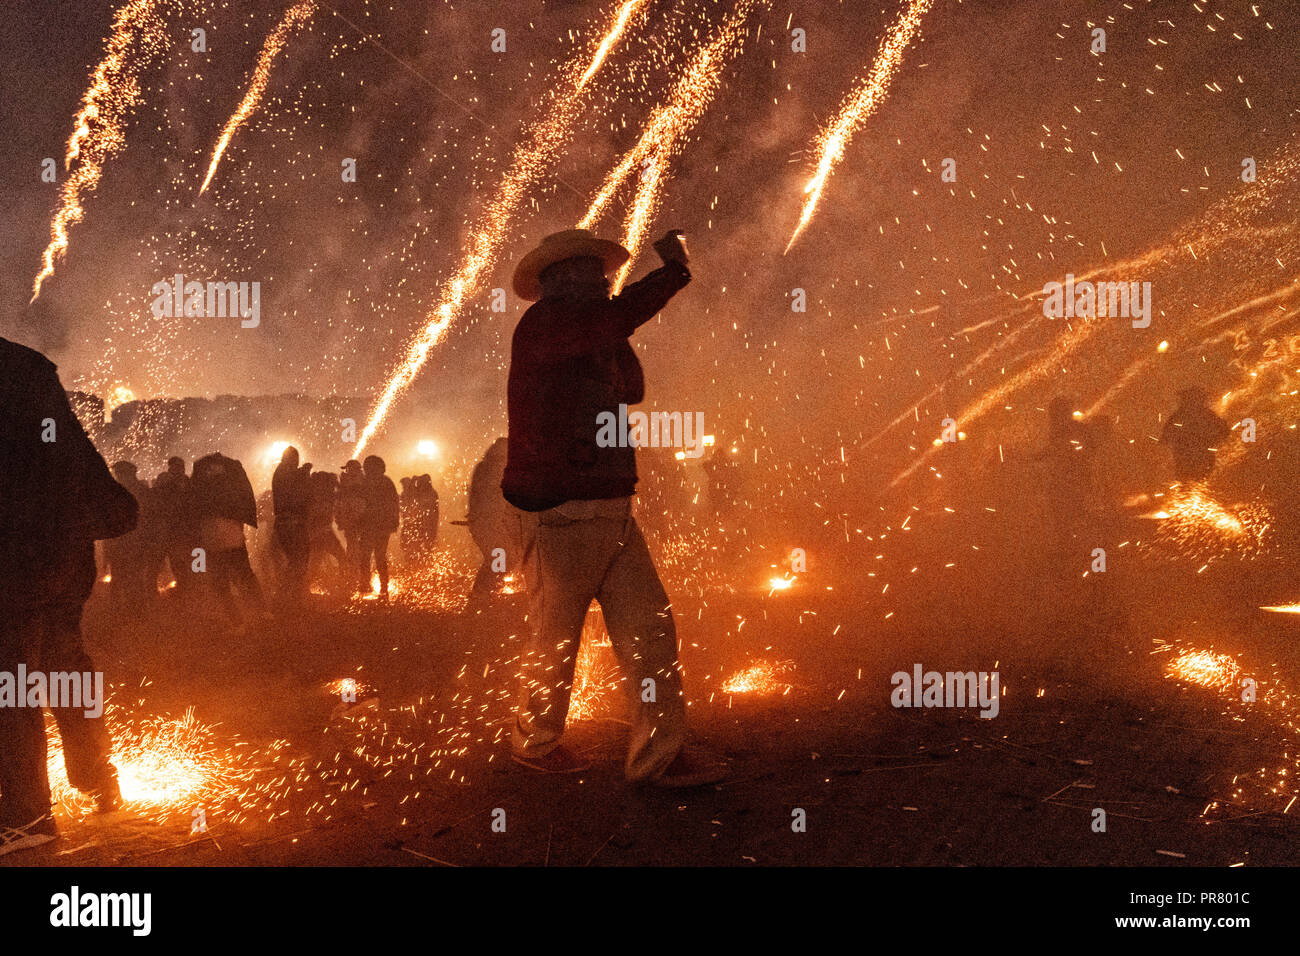 San Miguel de Allende, Mexico. 29th Sept 2018. Sparks from exploding sky rockets scatter as a Mexican cowboy stands in the middle taking a mobile phone photo during the Alborada festival September 29, 2018 in San Miguel de Allende, Mexico. The unusual festival celebrates the cities patron saint with a two hour-long firework battle at 4am representing the struggle between Saint Michael and Lucifer. Credit: Planetpix/Alamy Live News - Stock Image